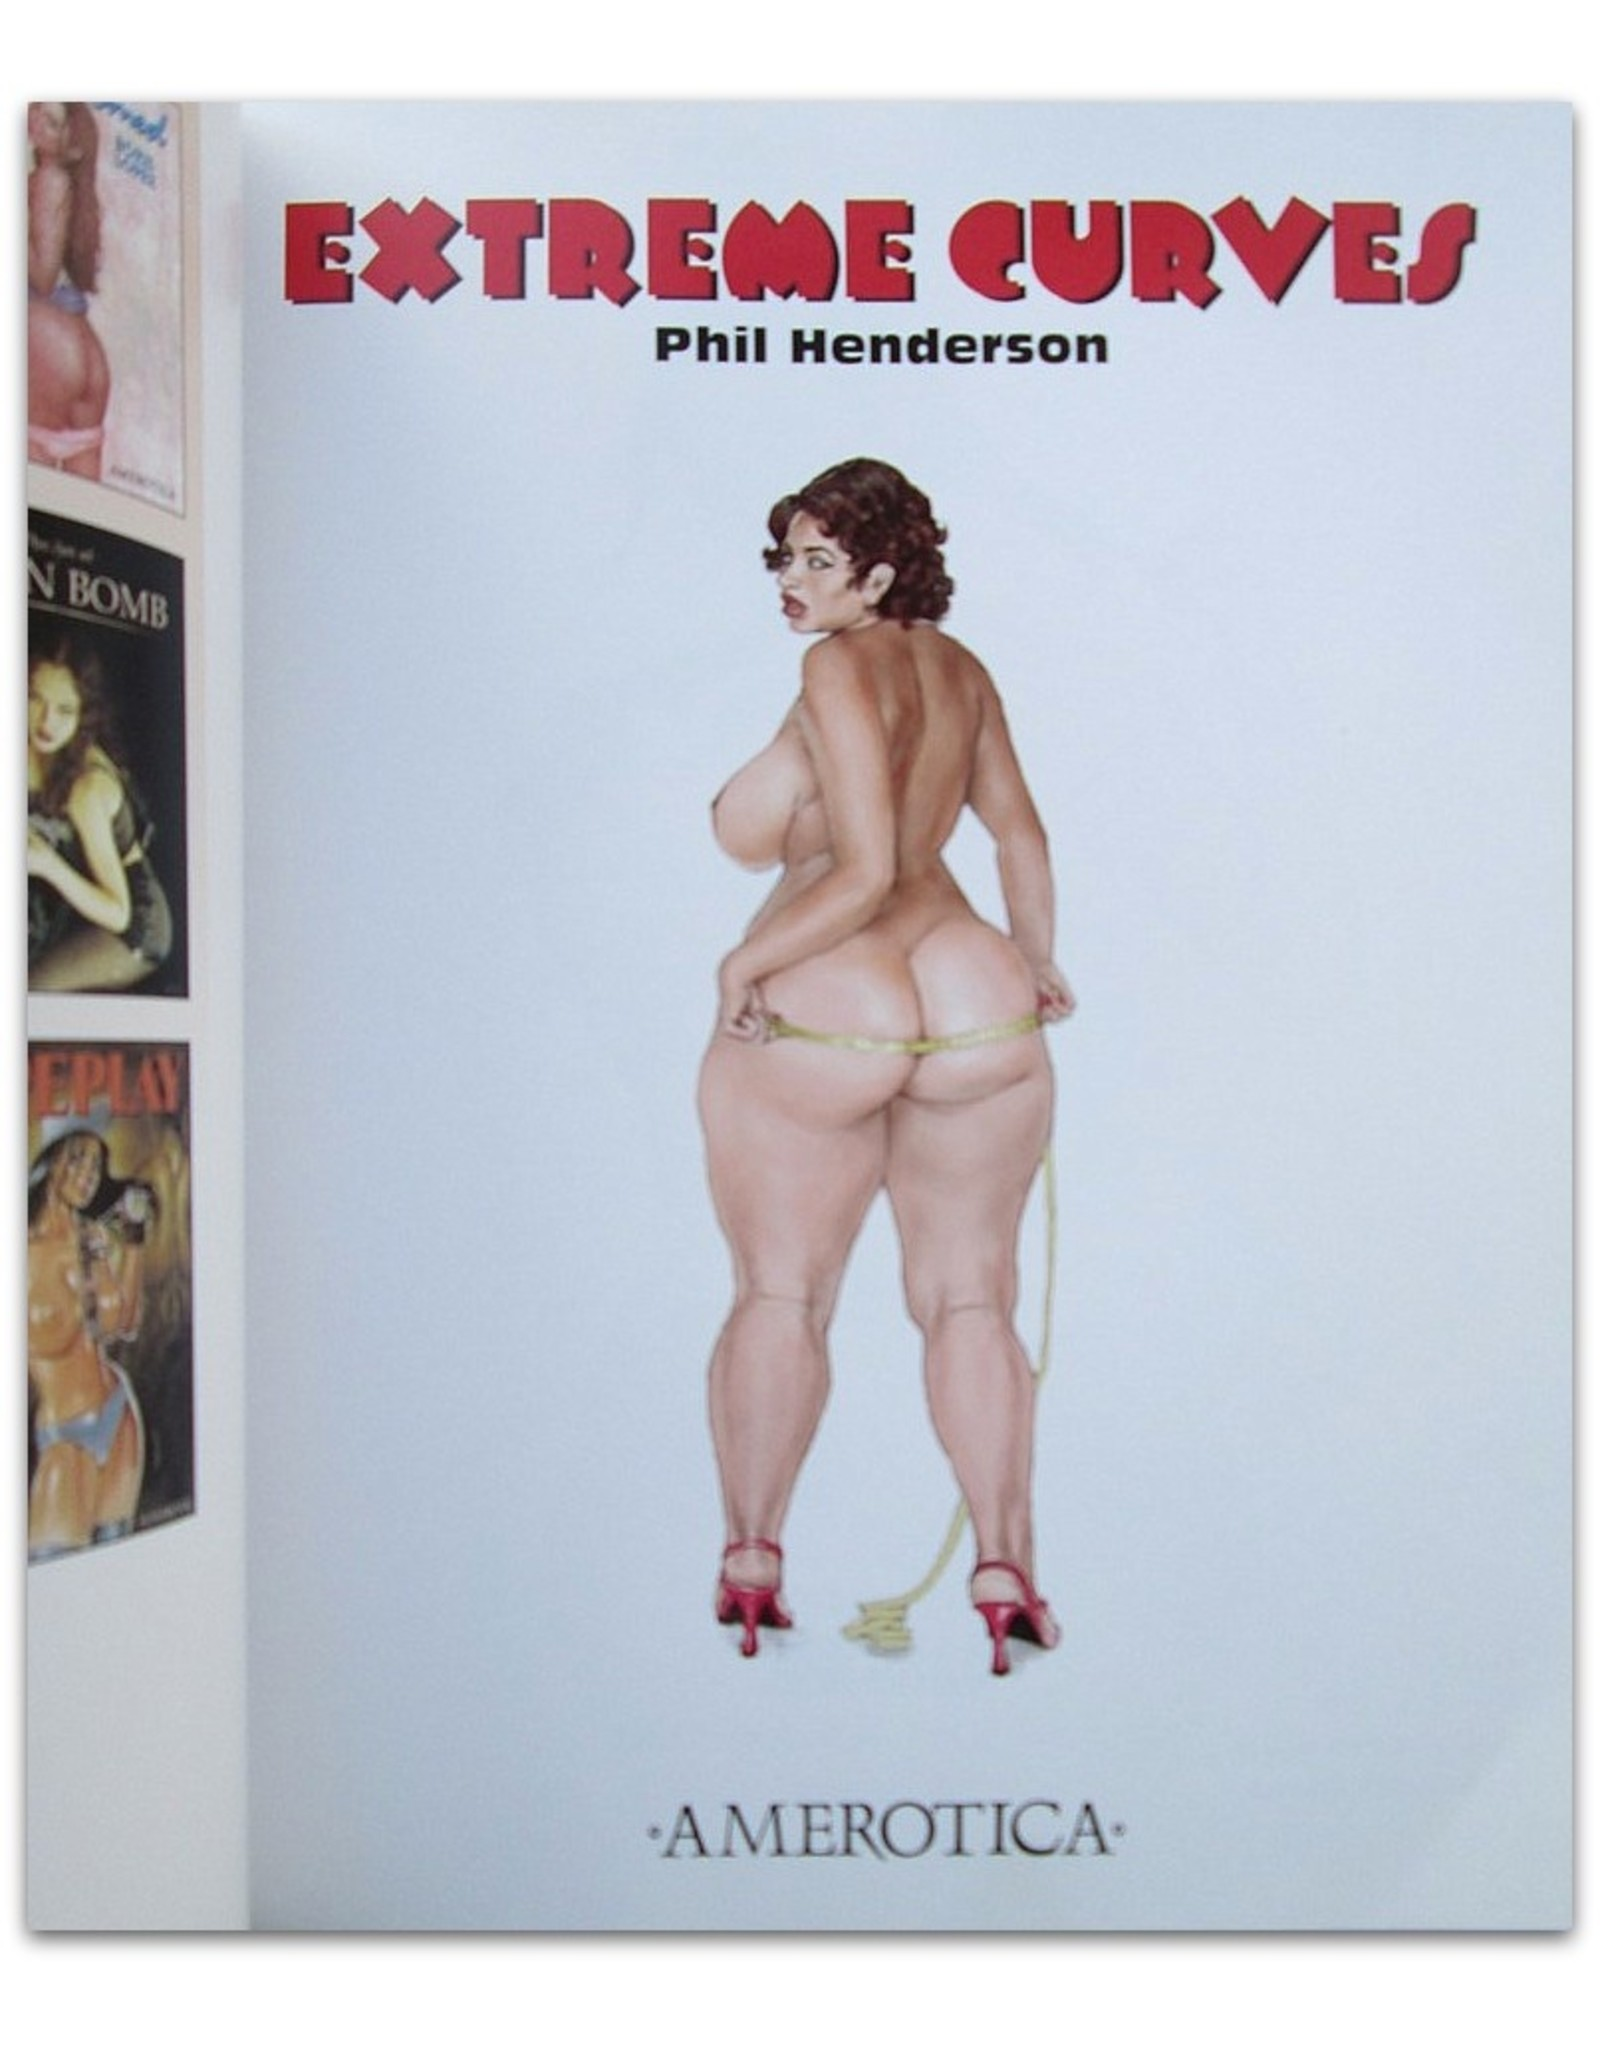 Phil Henderson - Extreme Curves